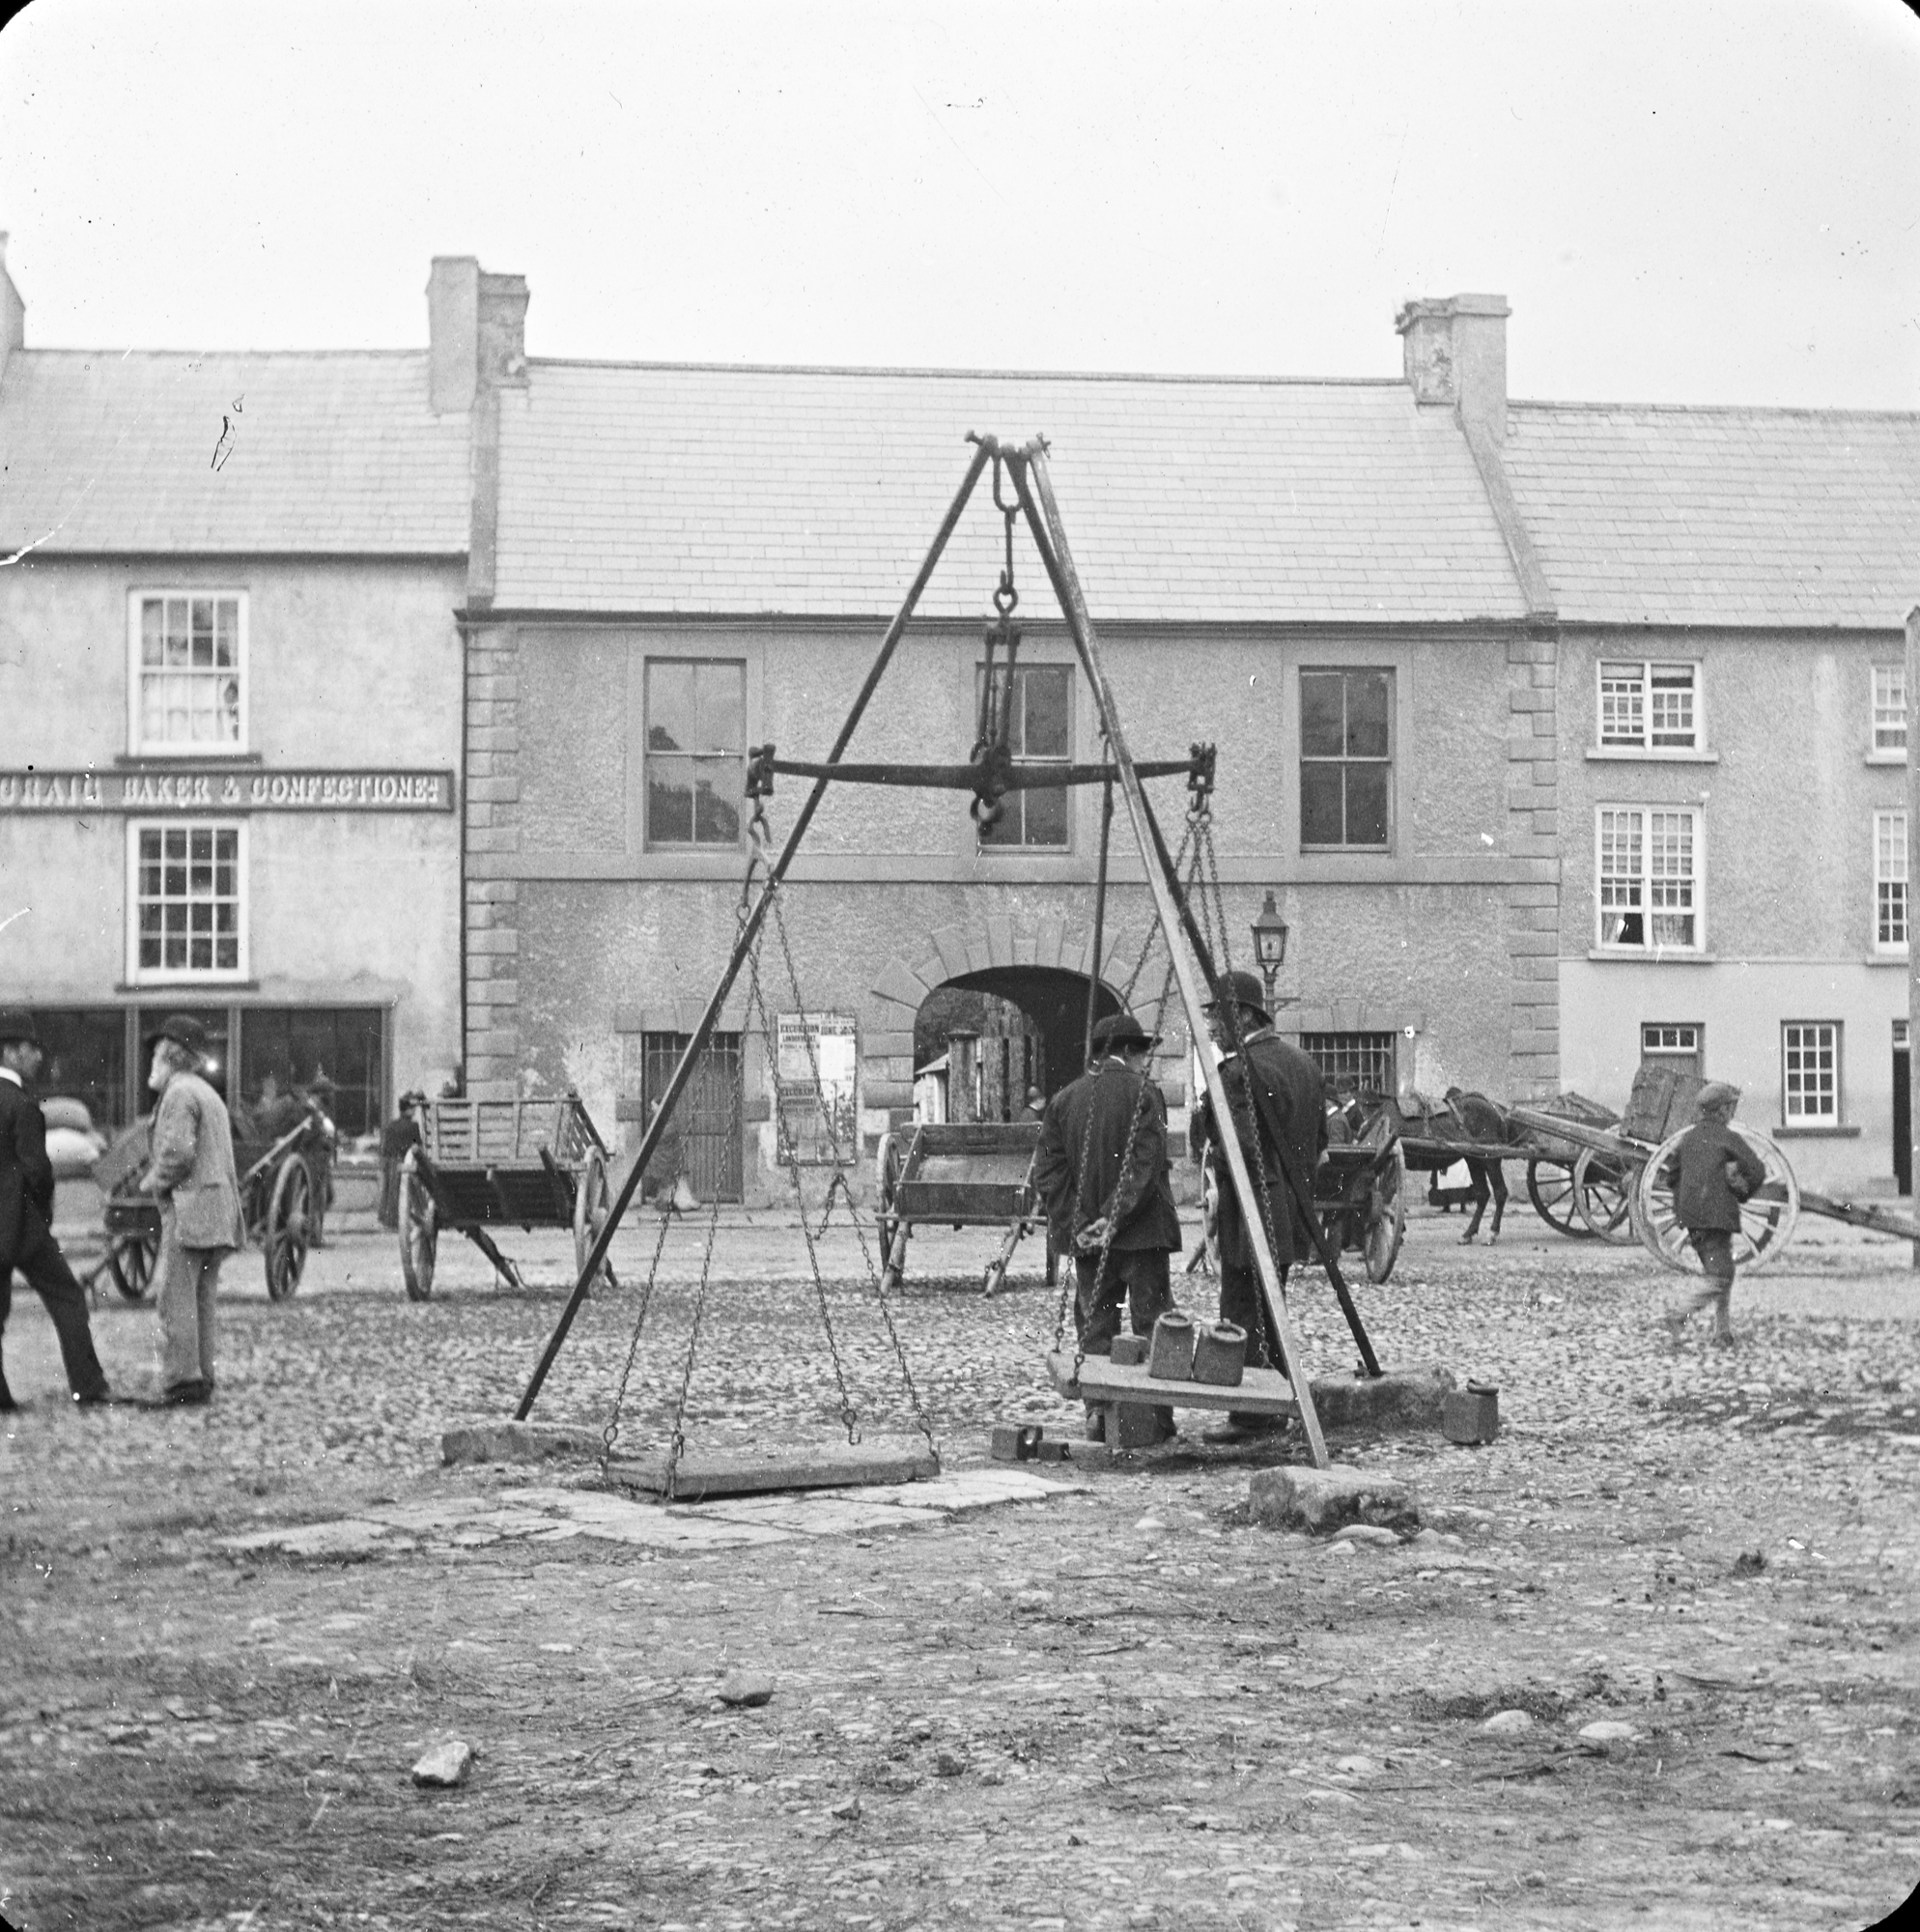 Old photo of Market Square, Donegal Town